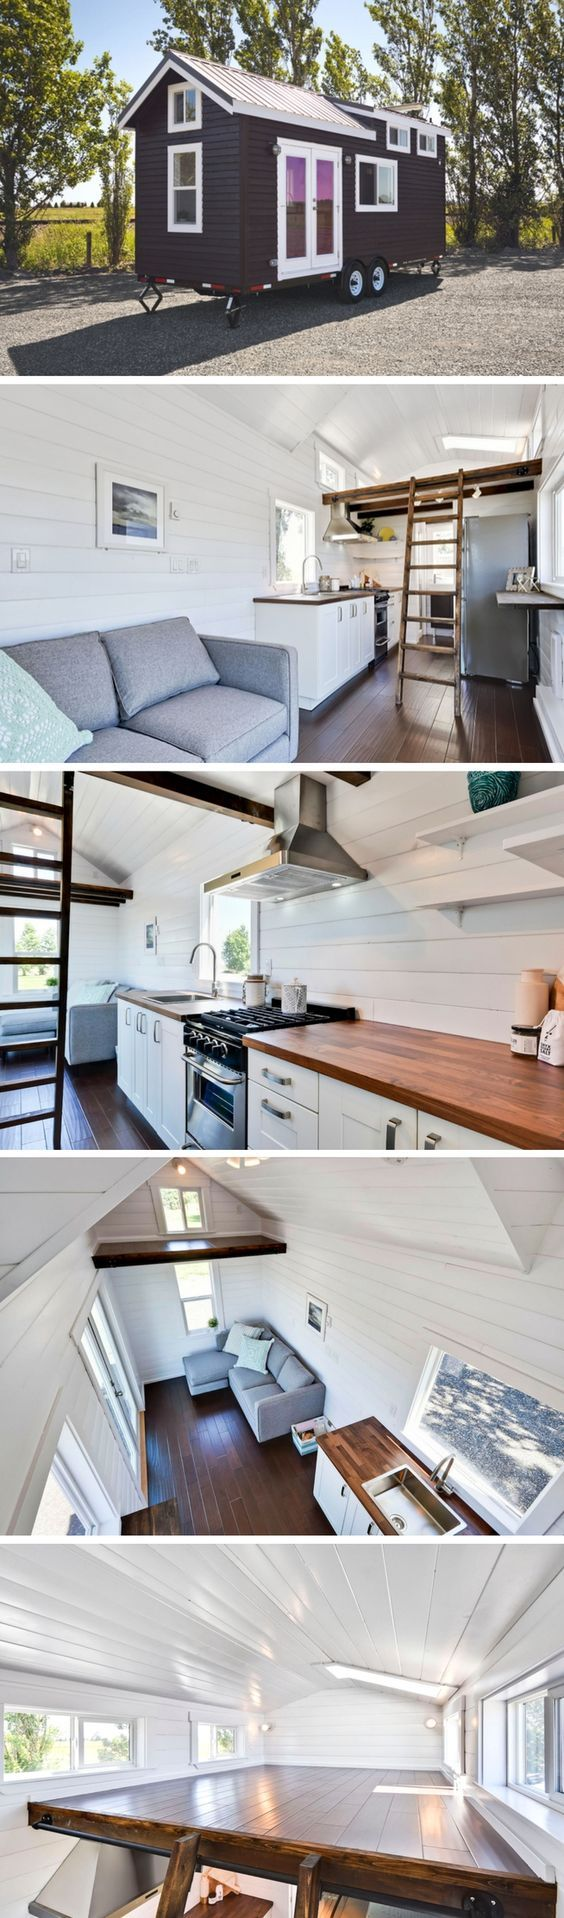 Just Wahls, a 204 sq ft tiny house by the Mint Tiny House Company